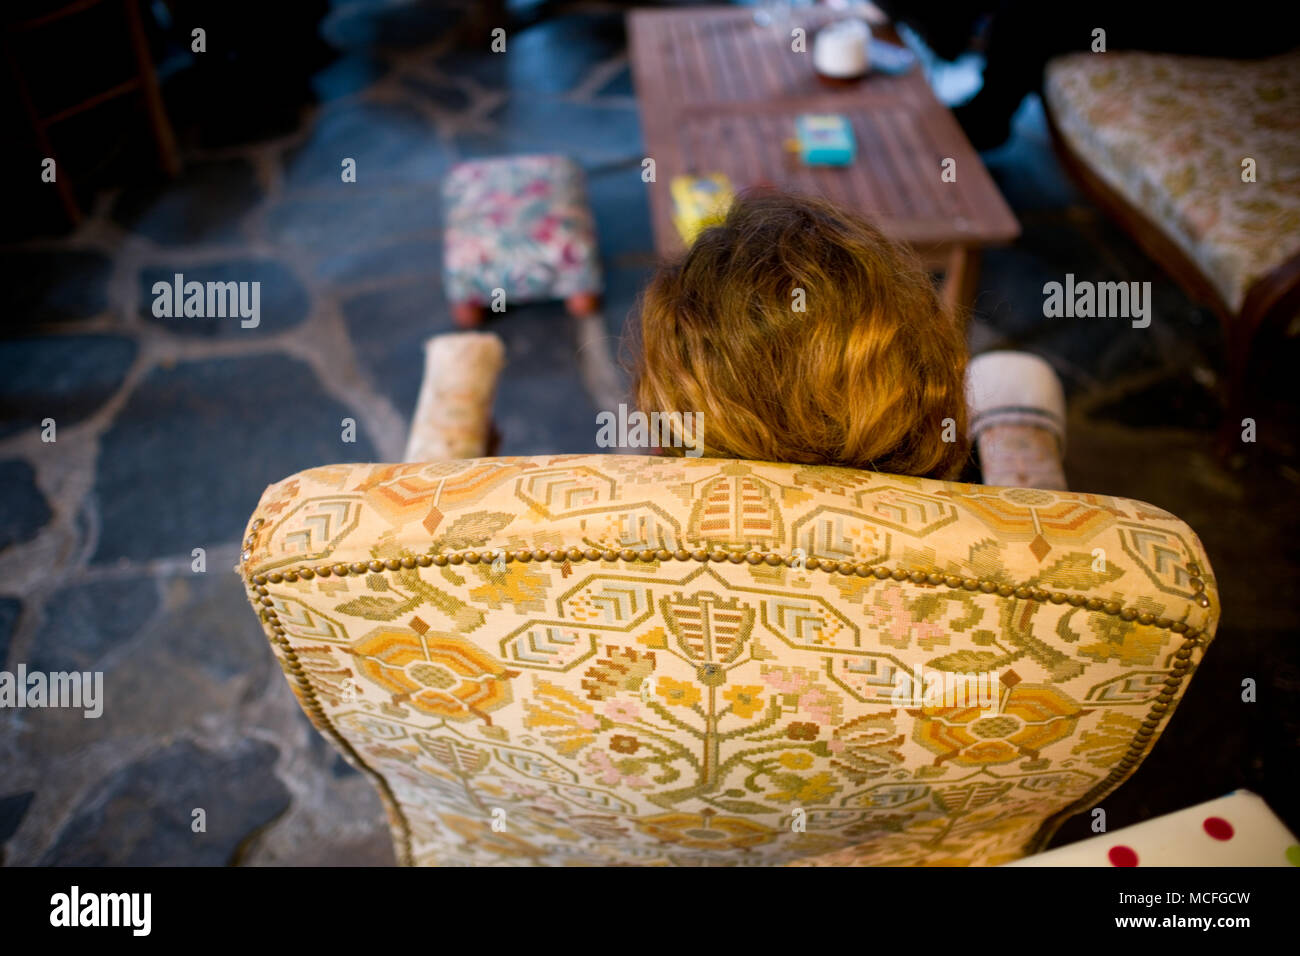 rear view shot looking down onto a woman sitting in an armchair on a stone floor in a cosy atmosphere - Stock Image